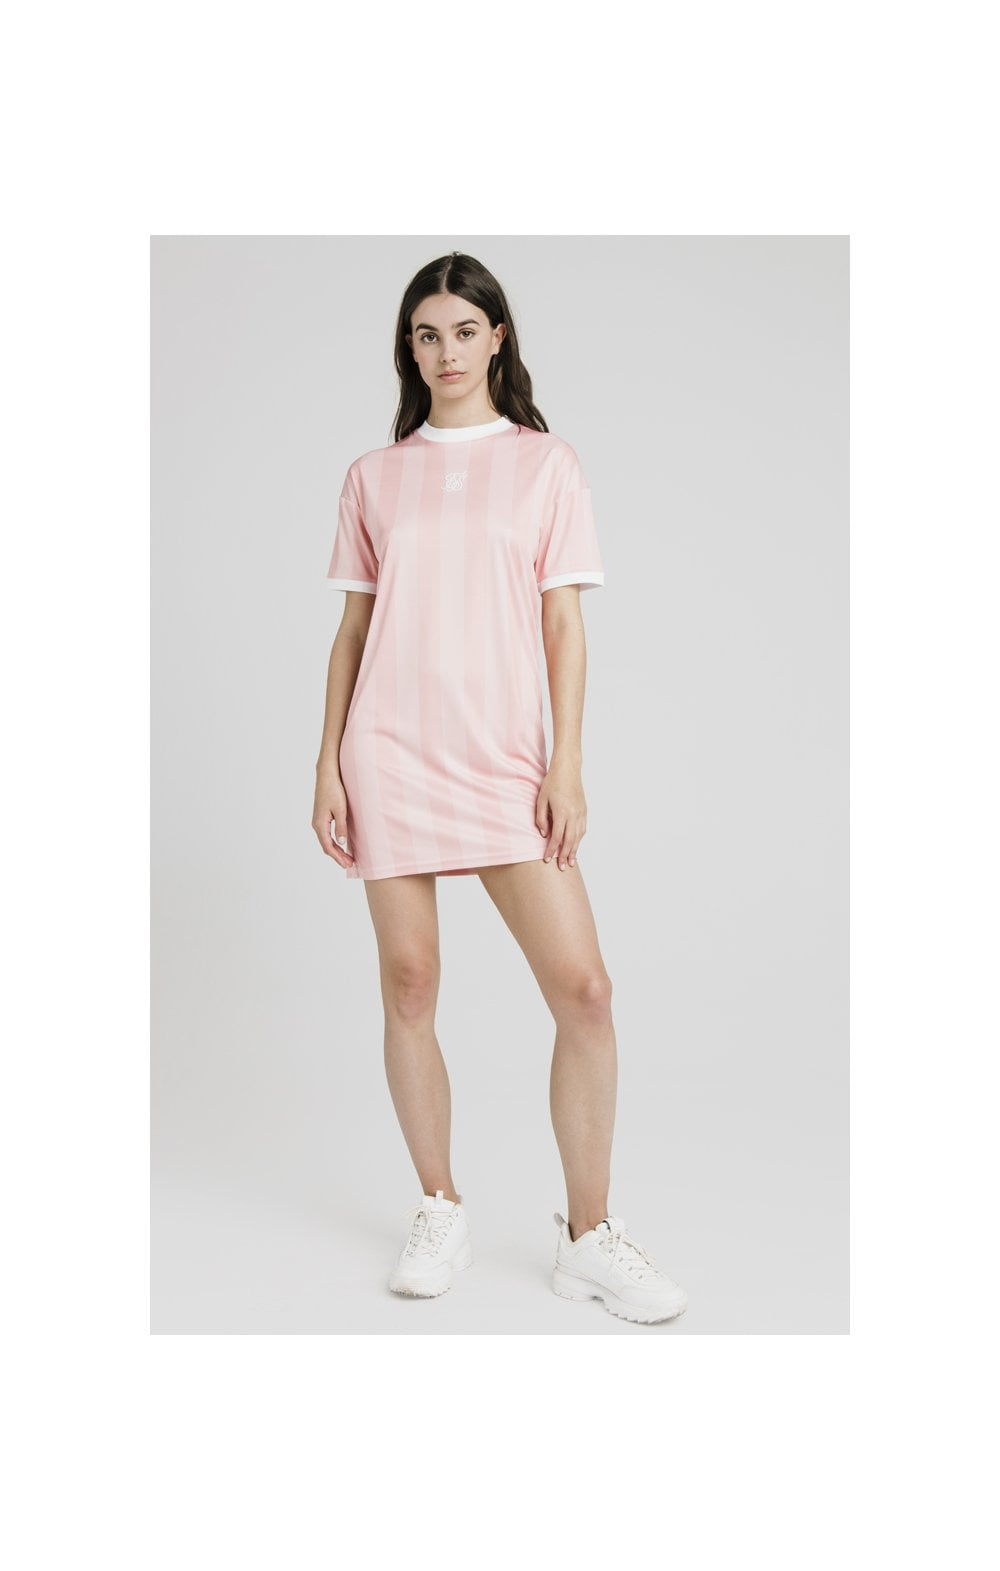 SikSilk Luxury Poly Dress - Apricot Blush (5)